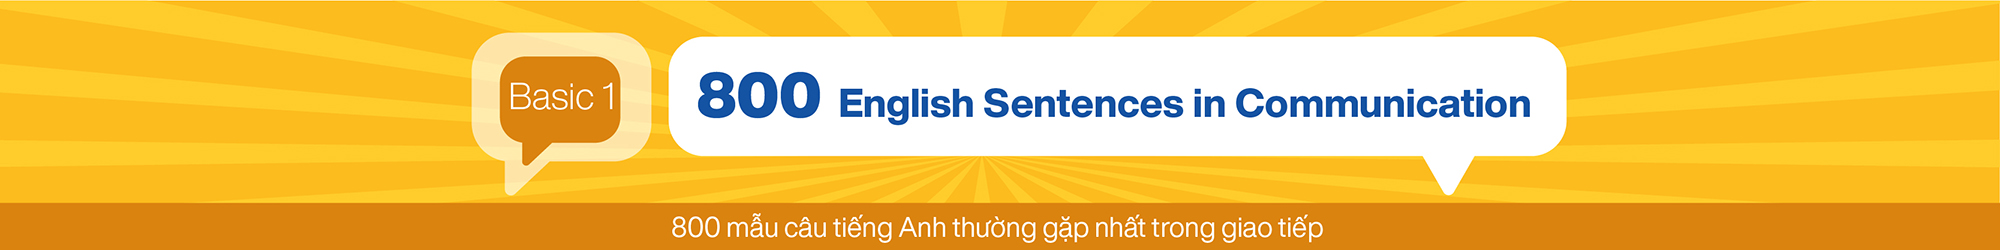 800 English Sentences in Communication (Basic 1) banner